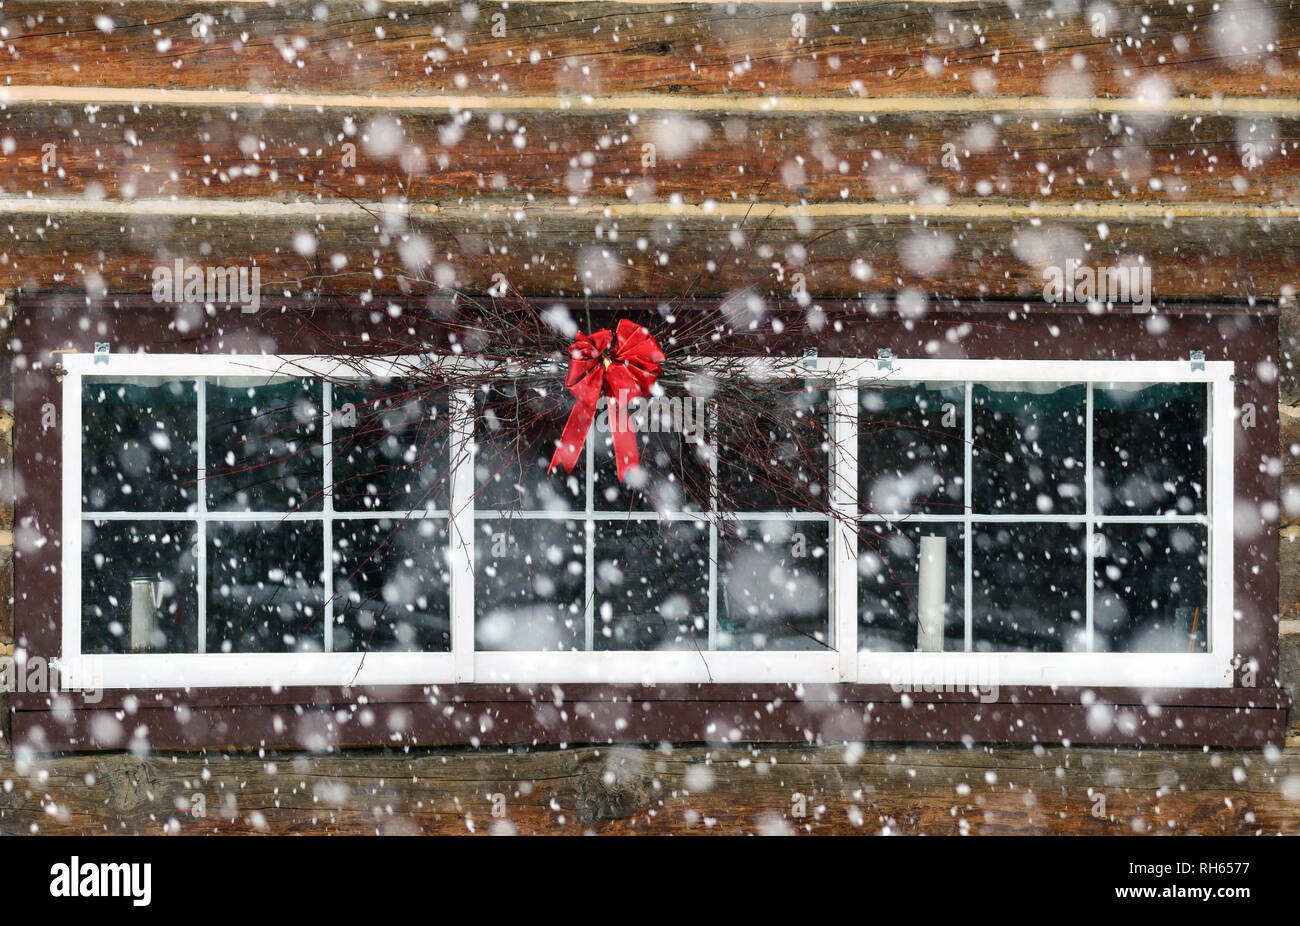 Historic Upper Ford Ranger Station with red ribbon and wreath during the holiday season. Kootenai National Forest, Northwest Montana Stock Photo